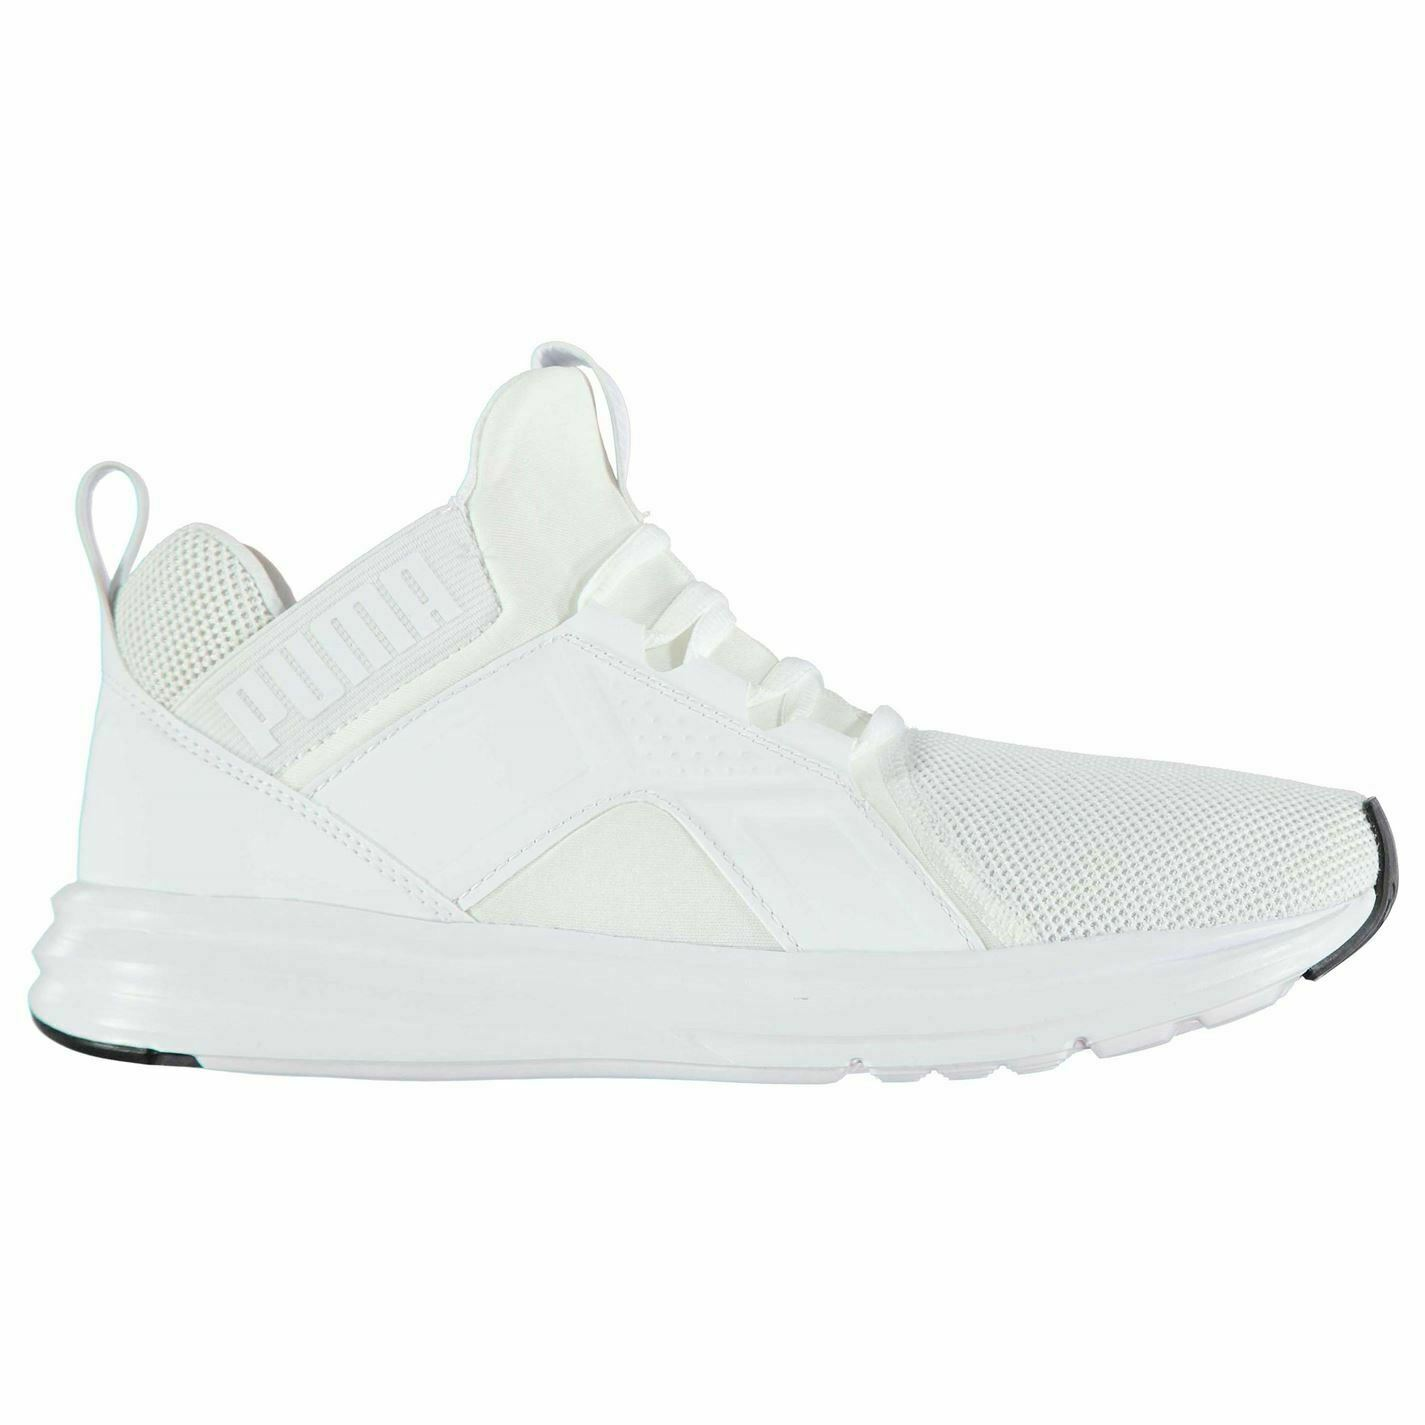 Puma Enzo Mesh Runners Trainers Mens White Athletic Sneakers shoes